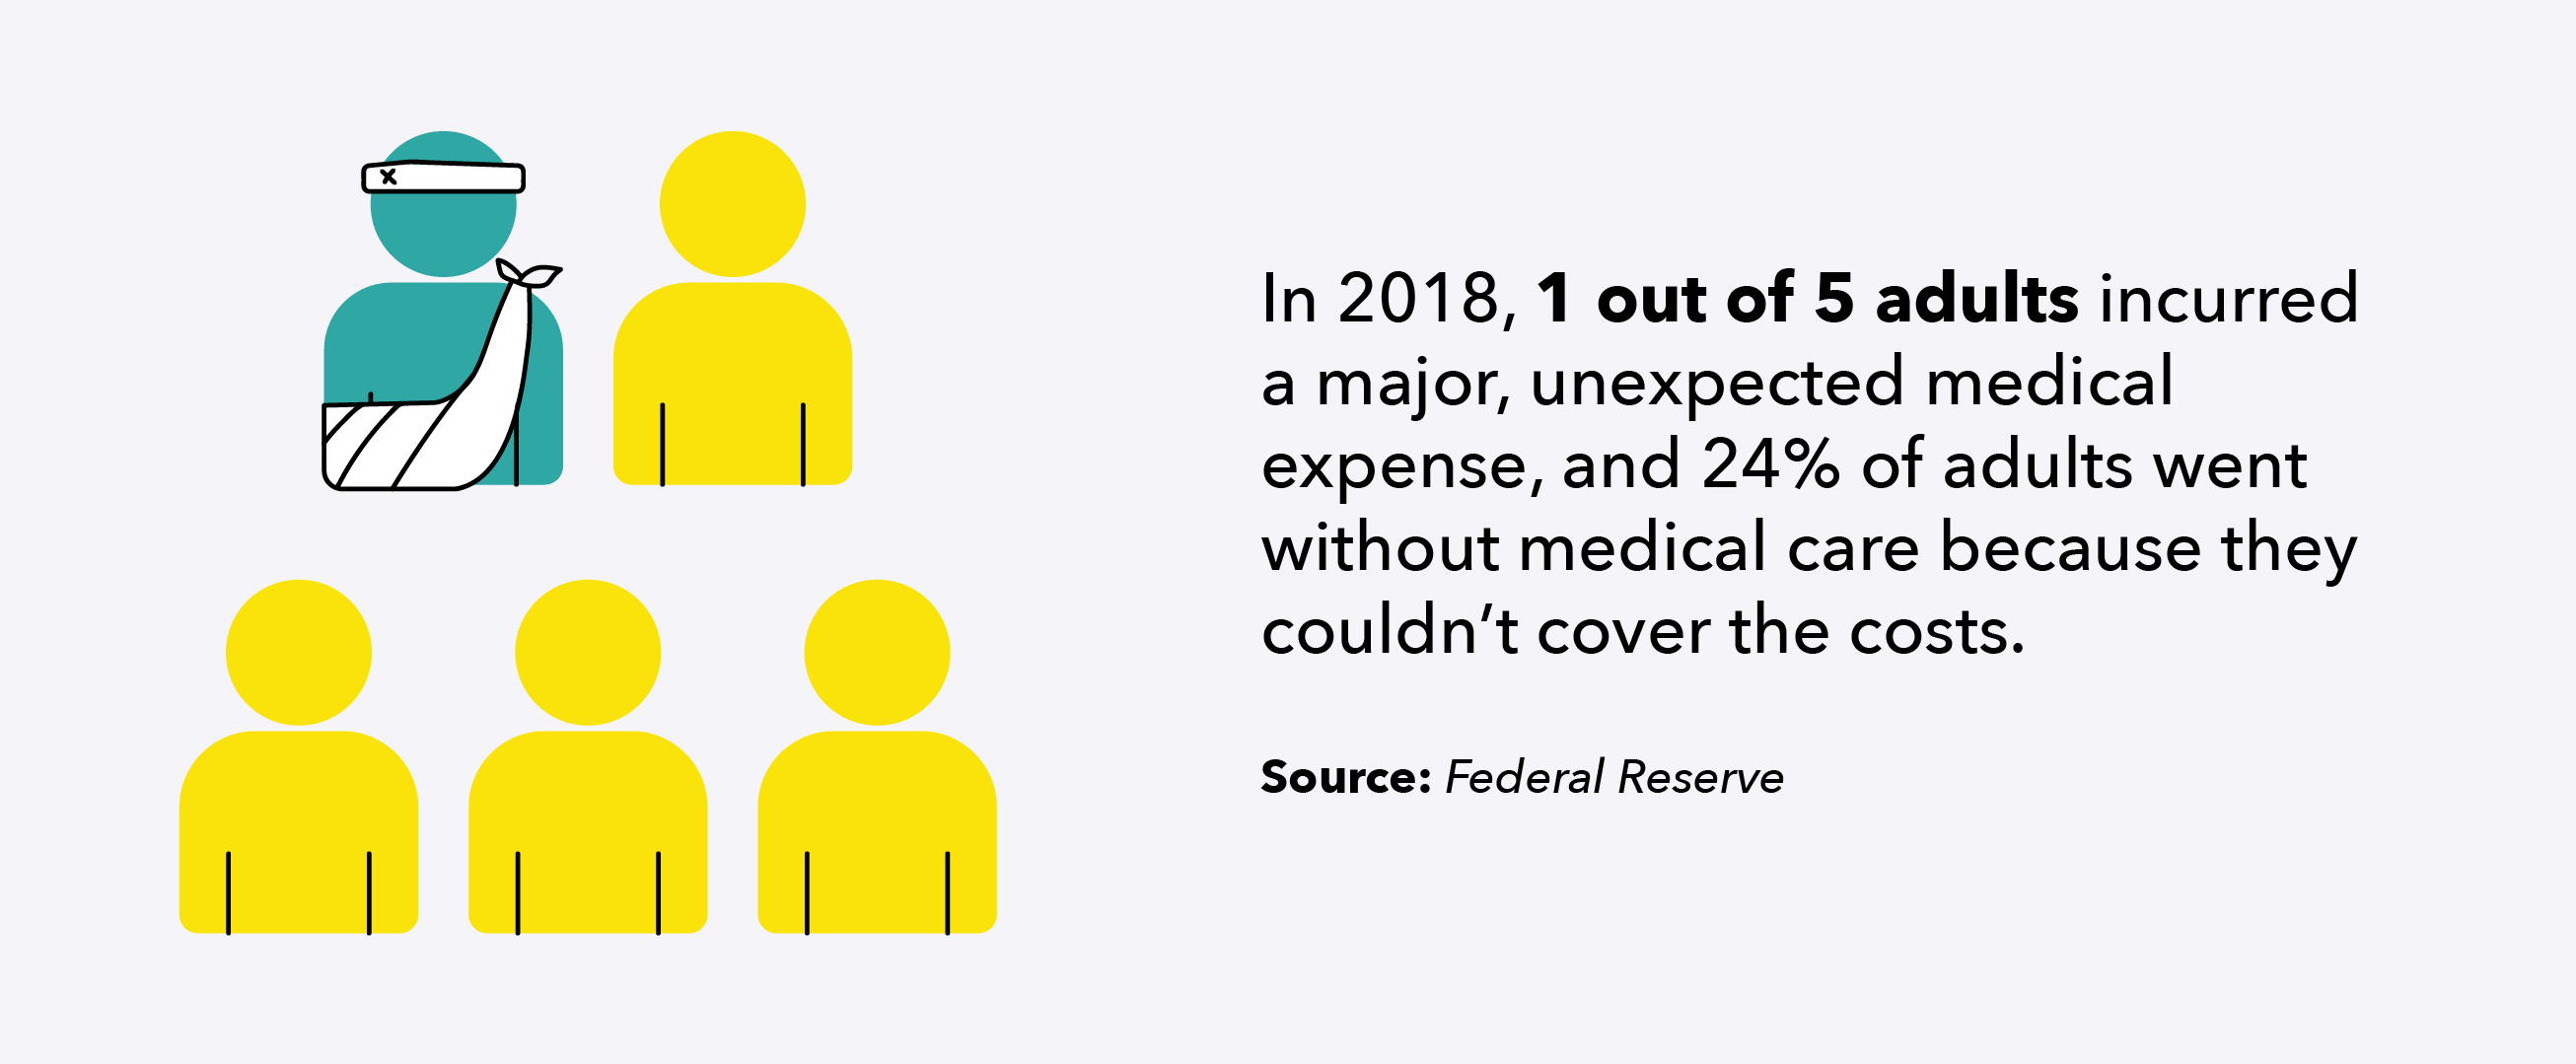 1 in 5 adults incurred a major medical expense in 2018